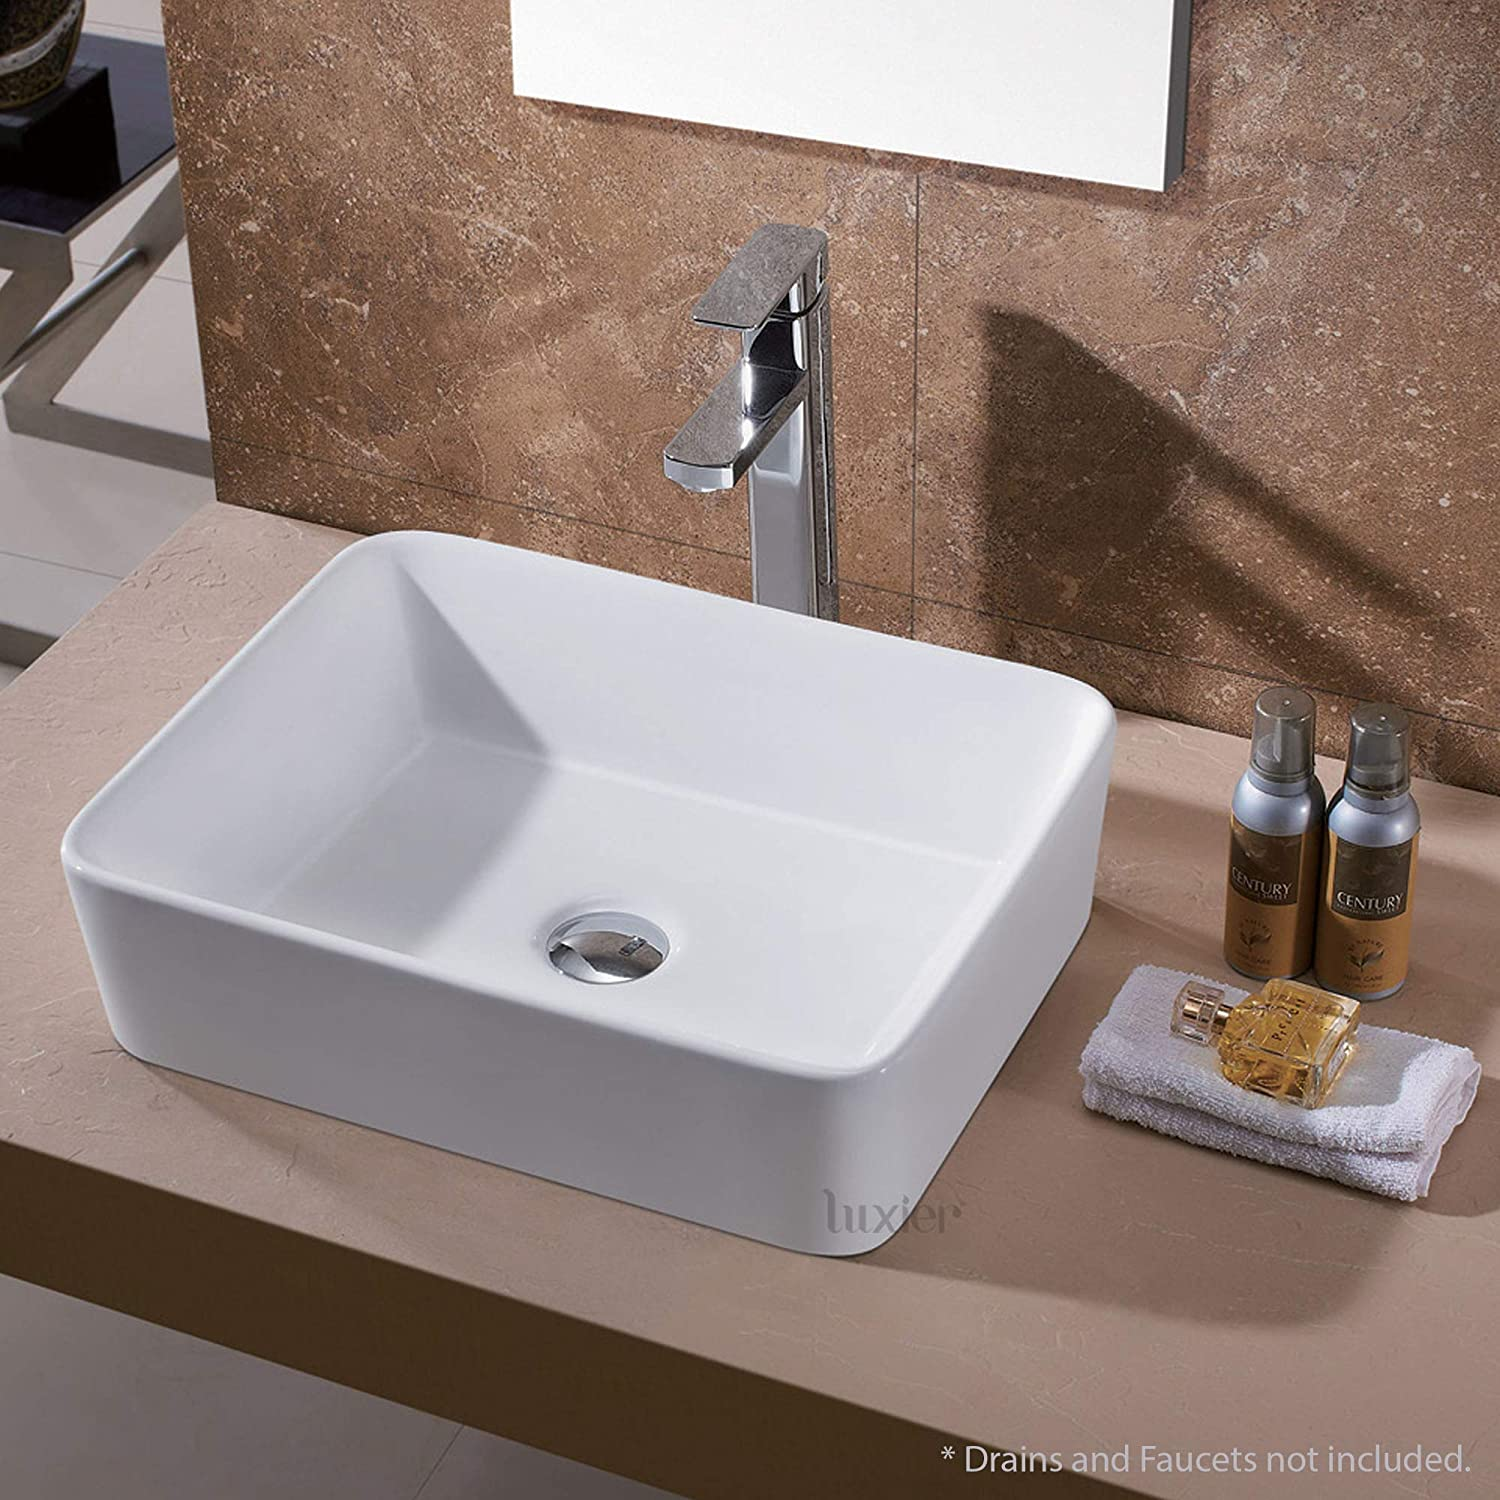 KOHLER K-2298-0 Compass Self-Rimming Undercounter Bathroom Sink, White